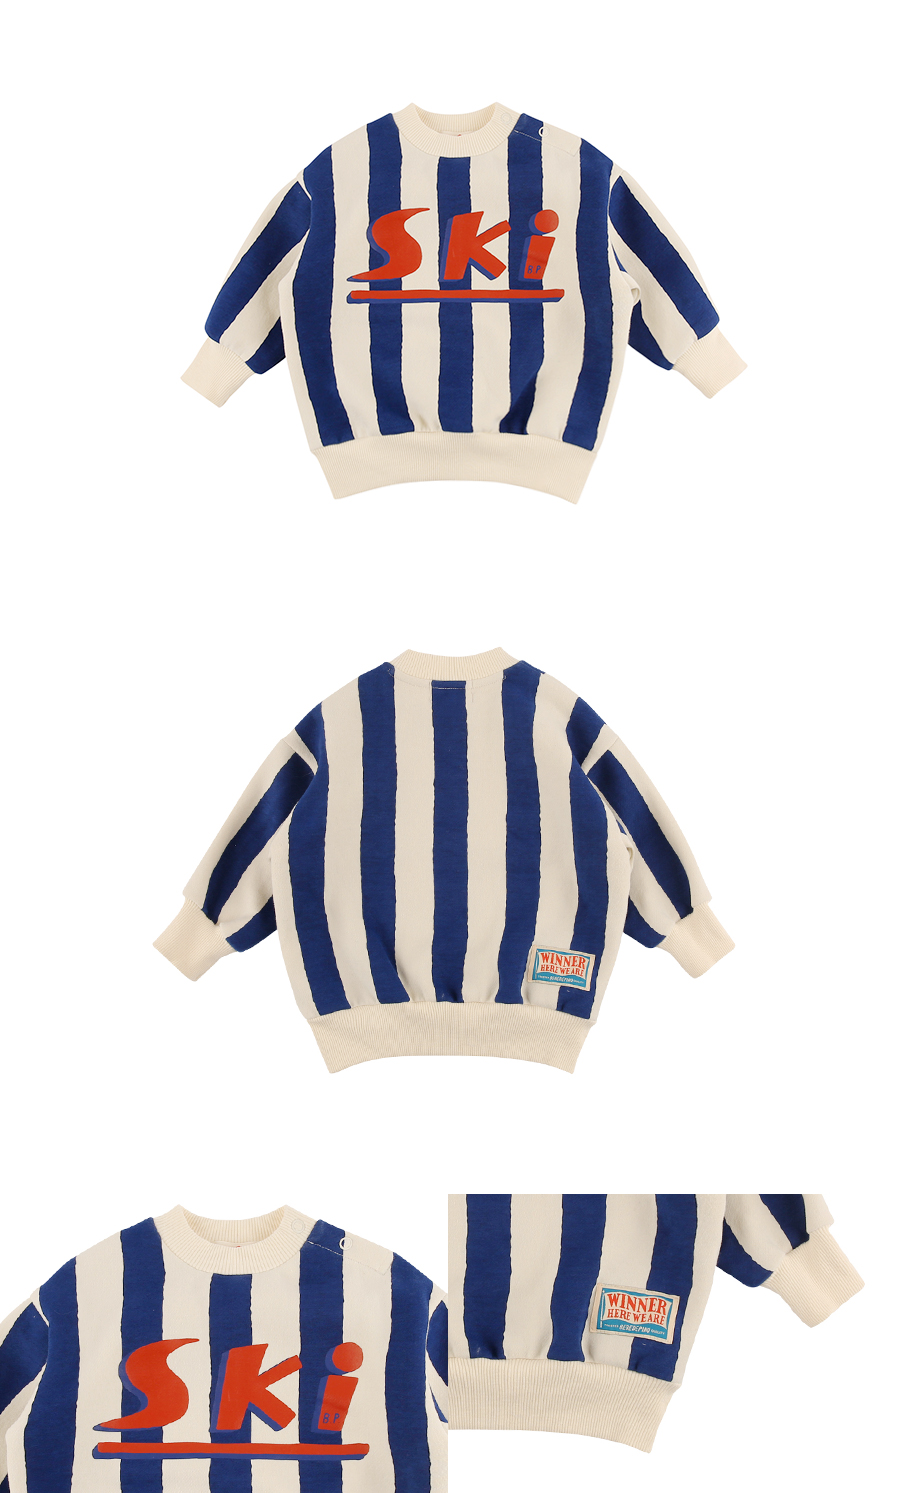 Ski baby winter stripe sweatshirt 상세 이미지